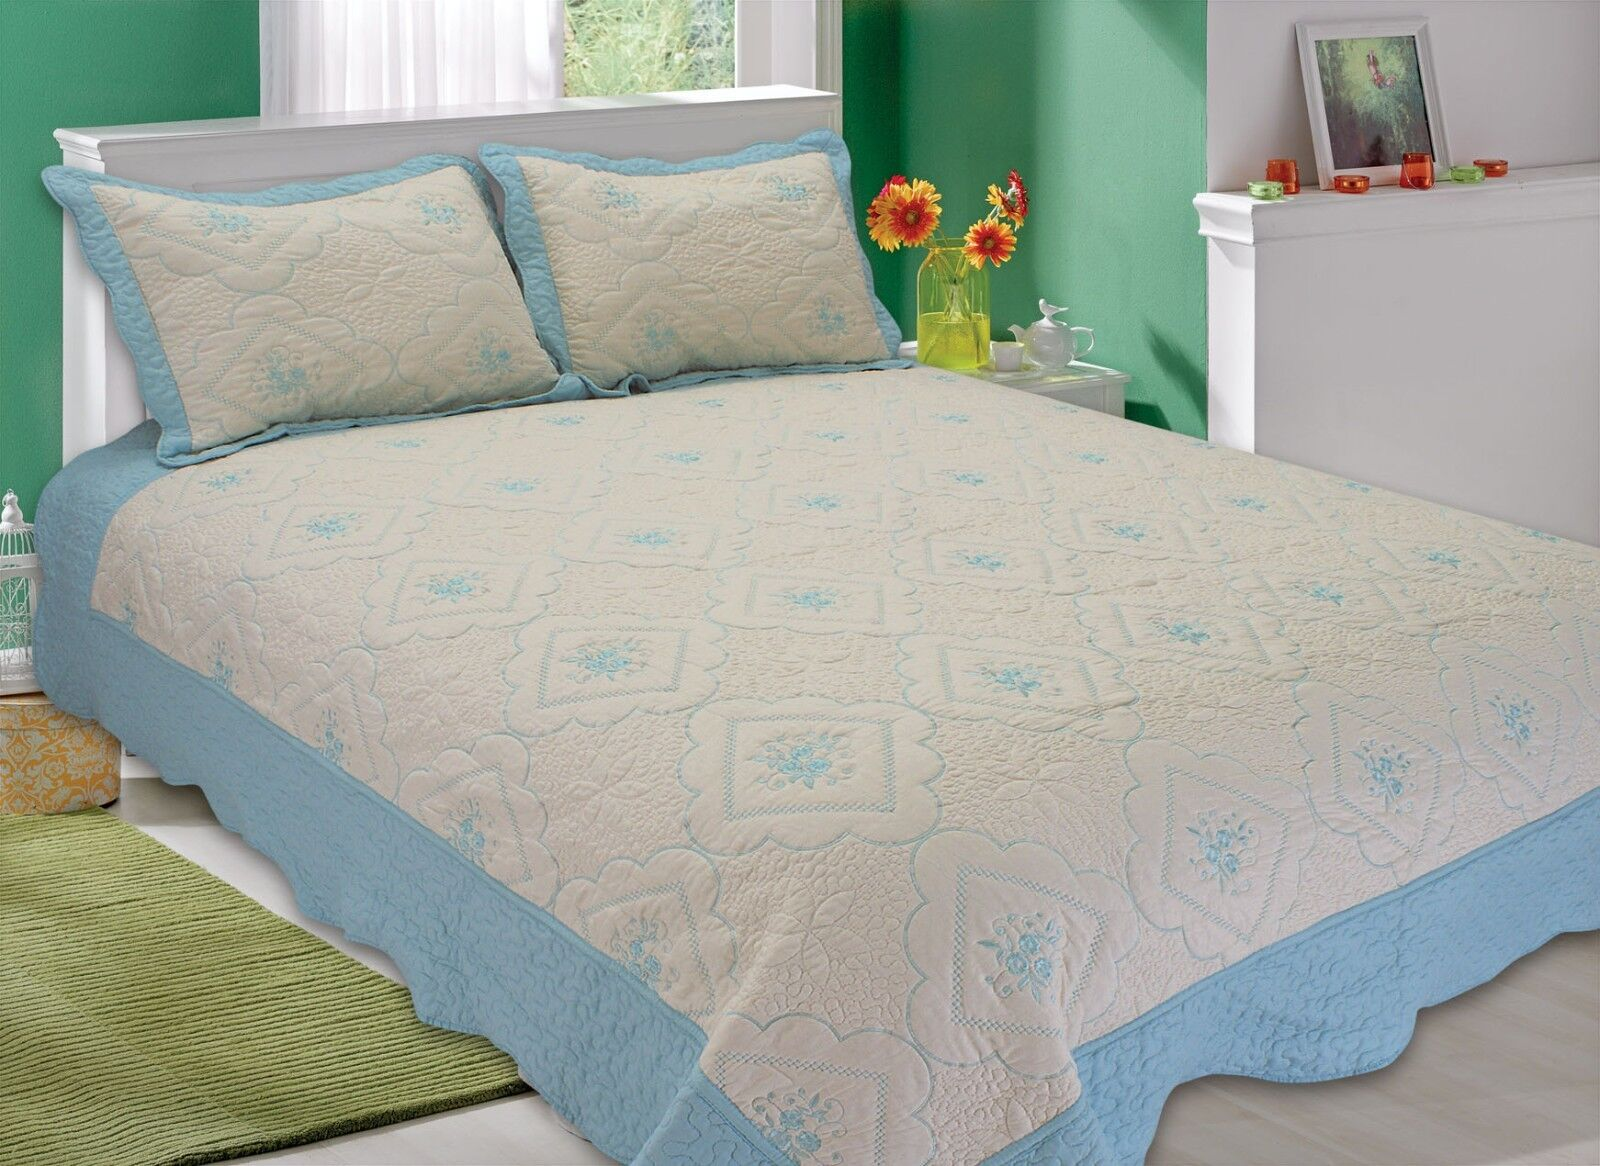 All for you-quilt set bedspread-coverlet-queen full king-embrodery